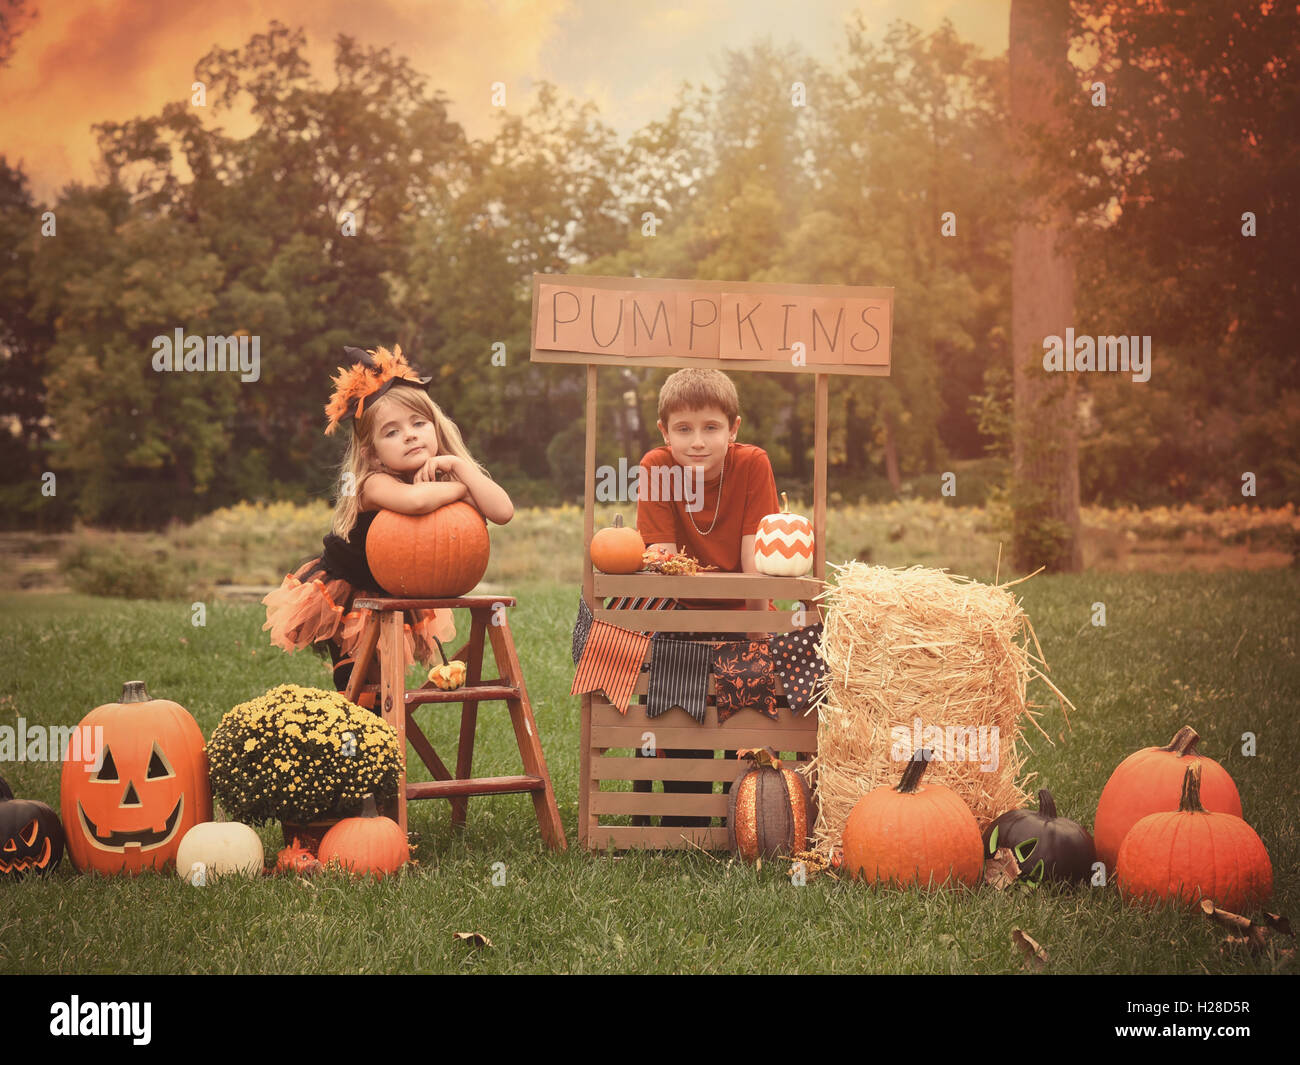 Two children are sitting outside at a wooden stand selling Halloween pumpkins for a holiday activity concept or - Stock Image